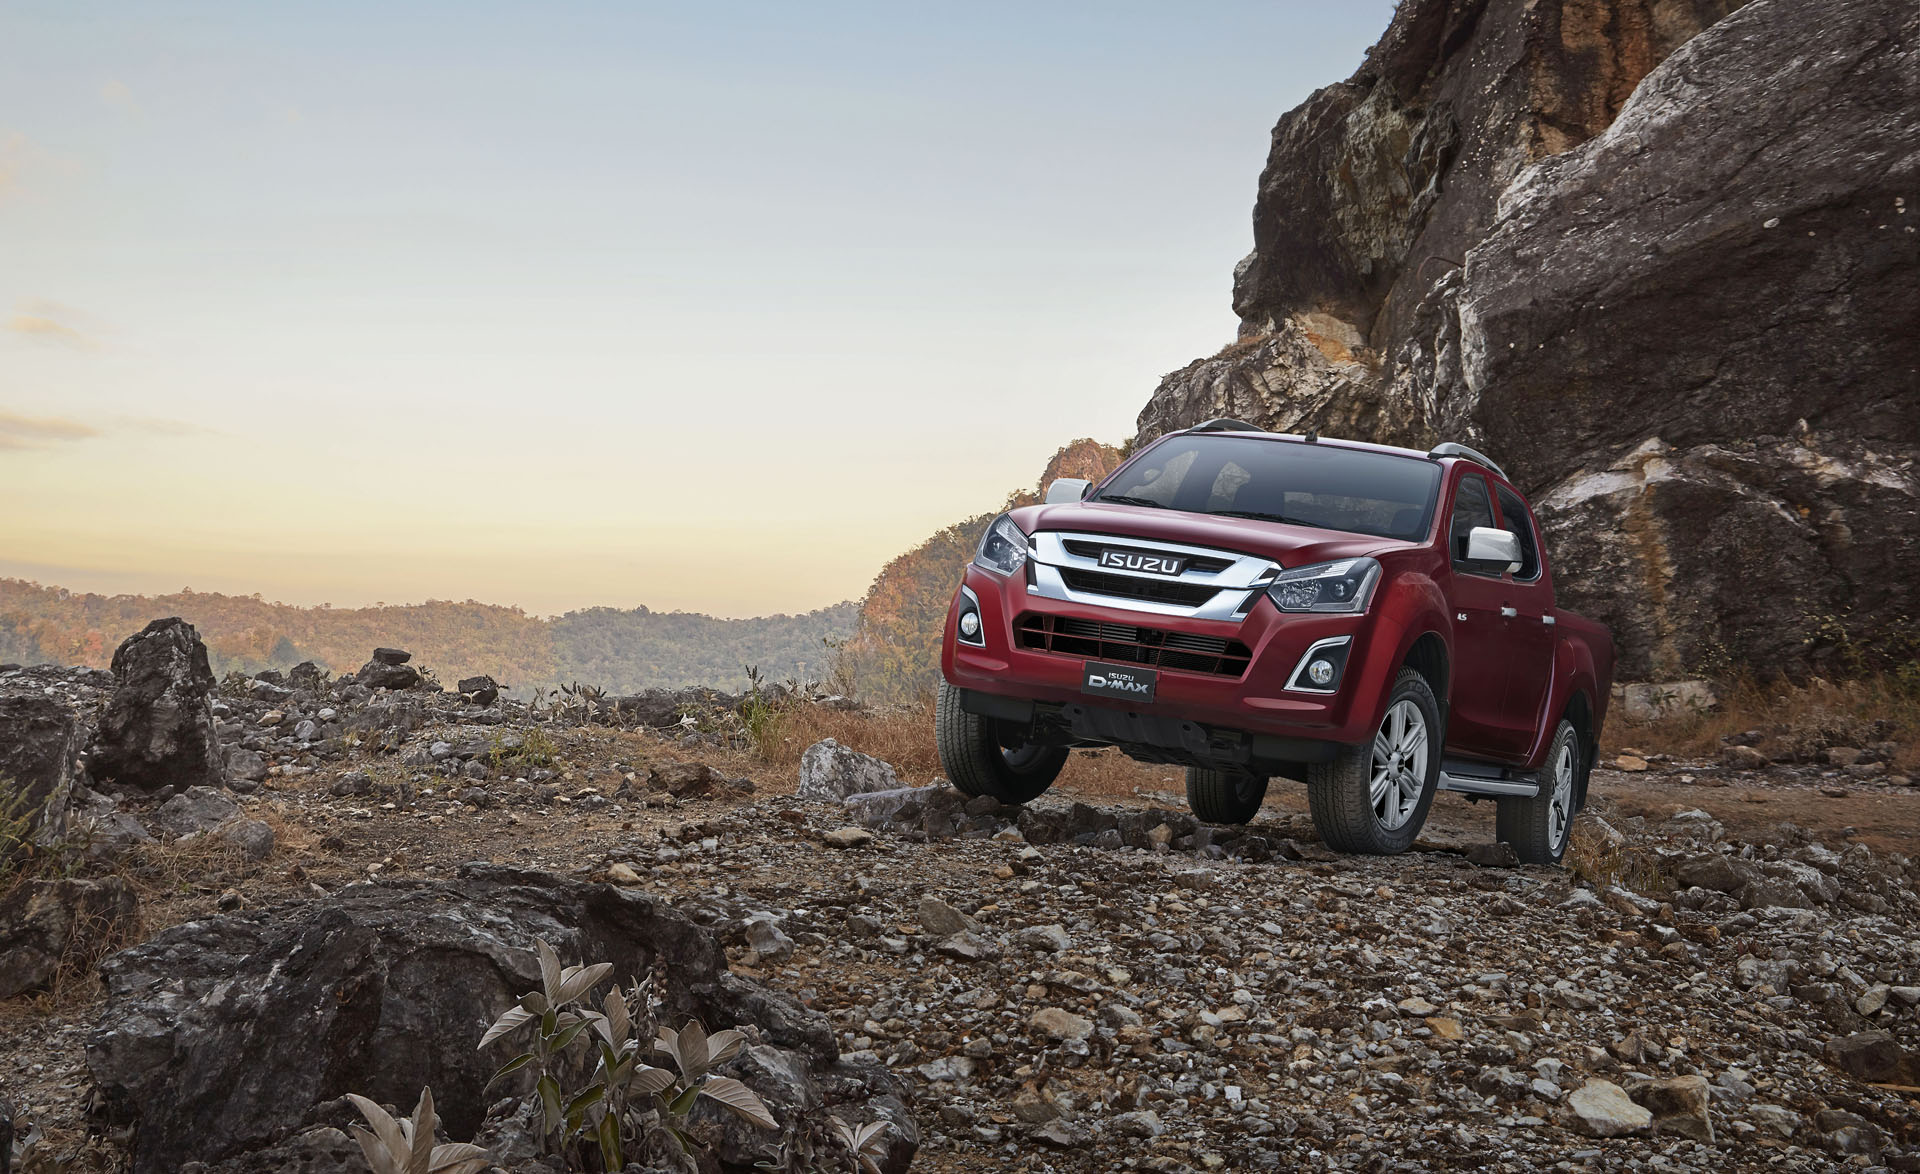 isuzu d-max whatvan? pick-up of the year 2019